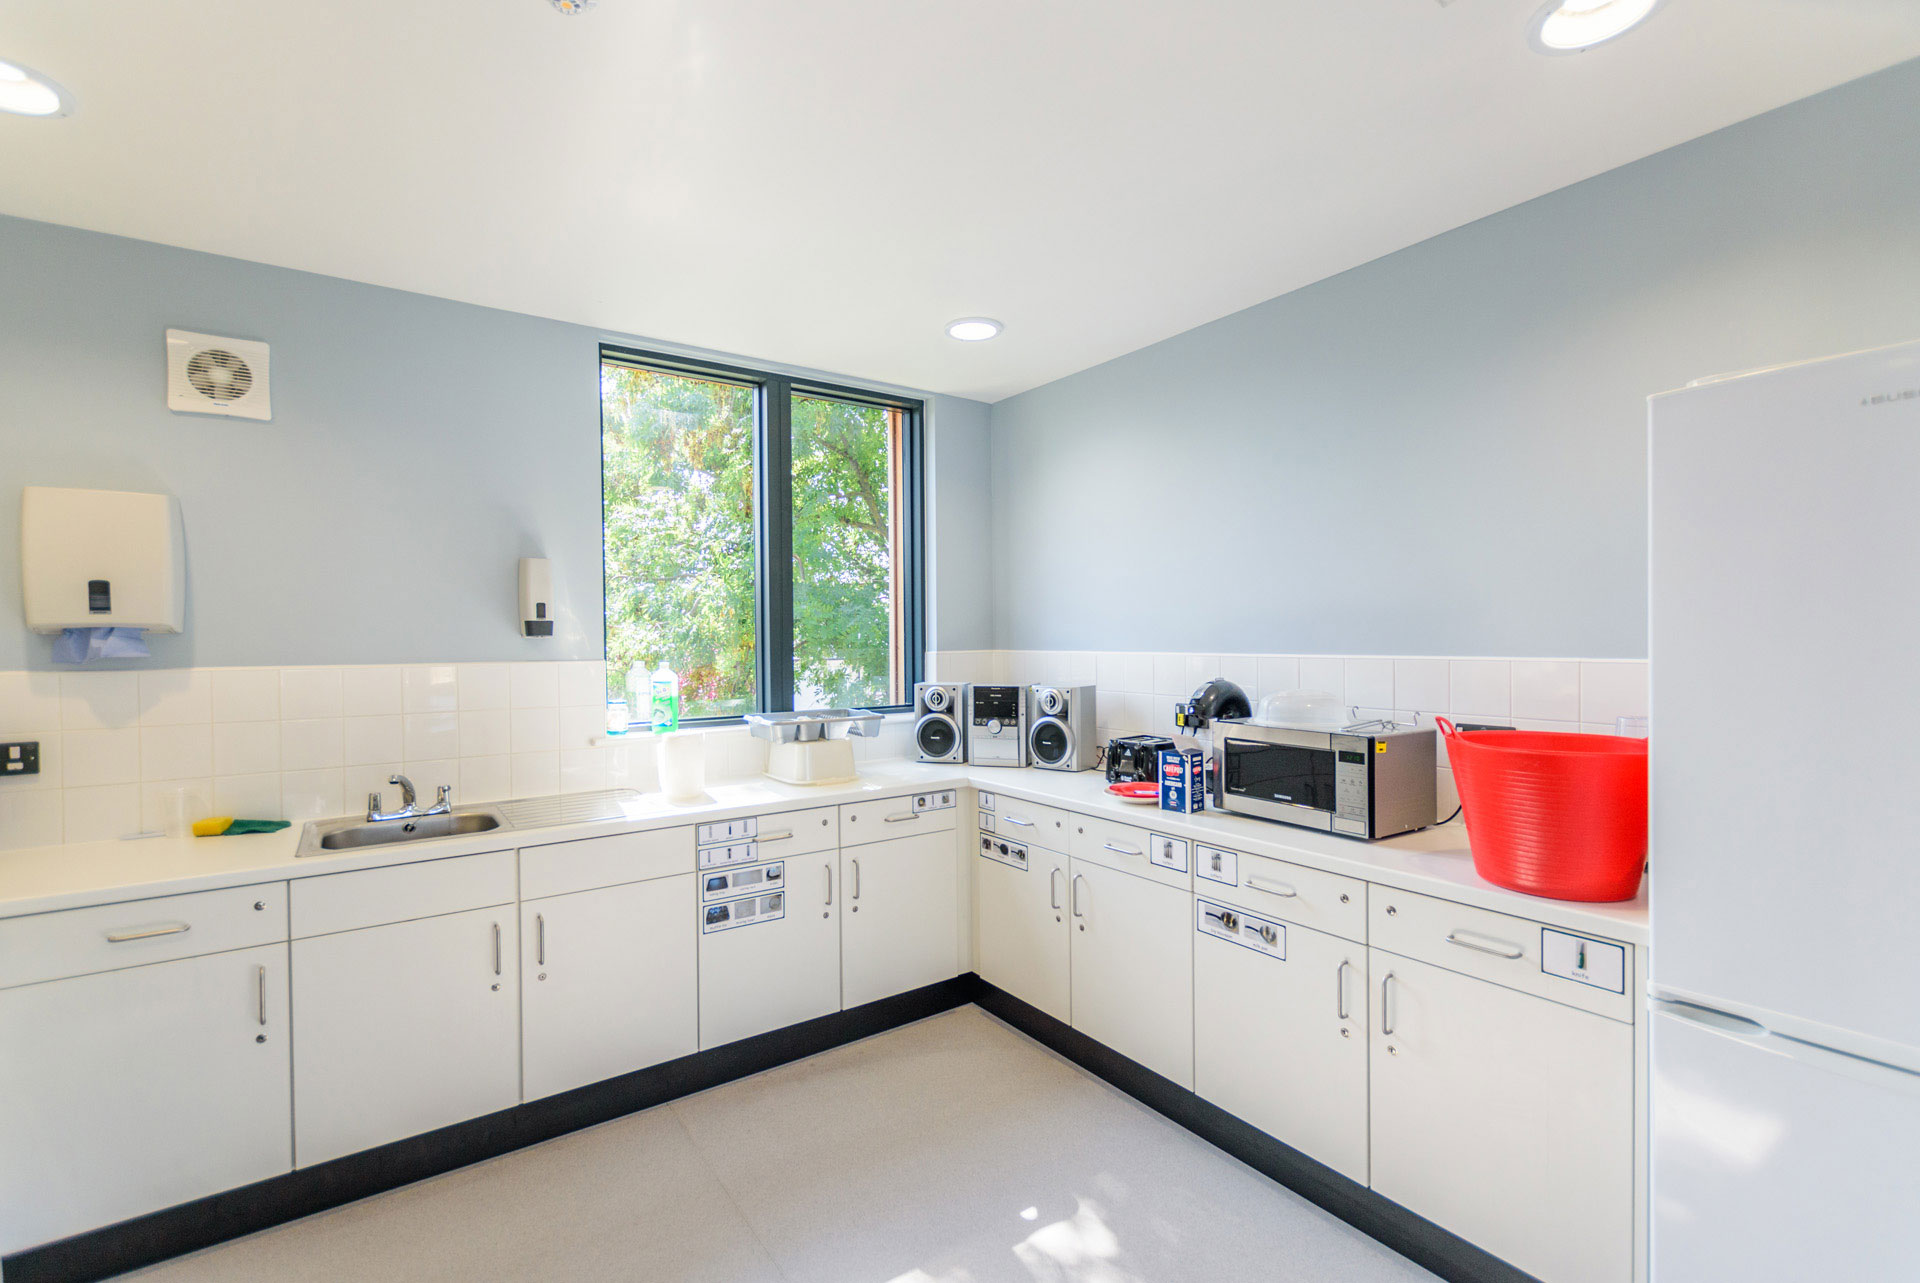 Drumbet School and ASD 6th Form teaching - Modular SEN building - Independent living kitchen area